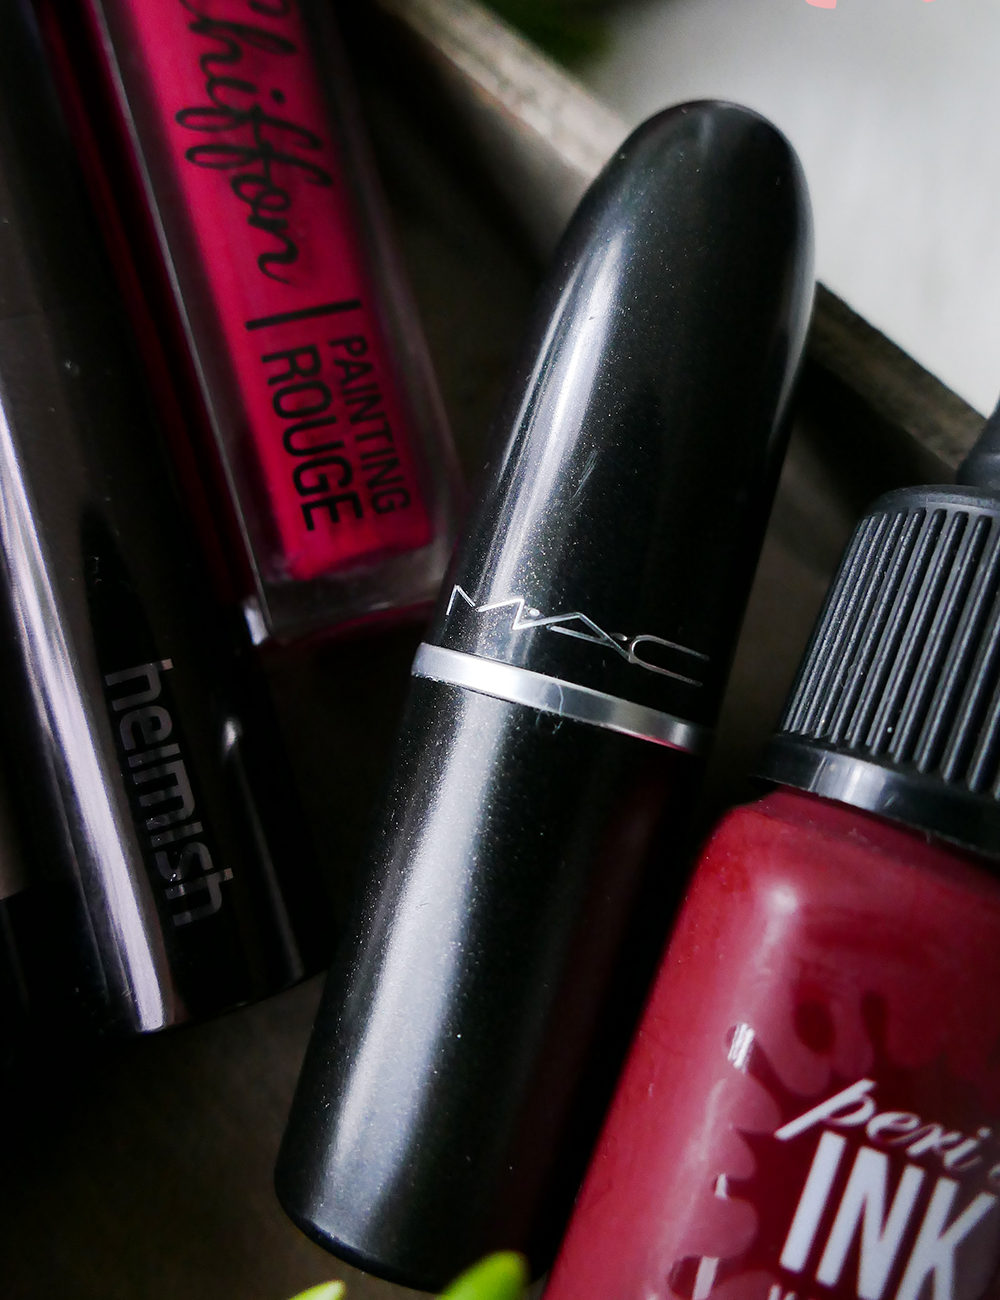 Top 5 Liptsticks & Lip Tints for Spring